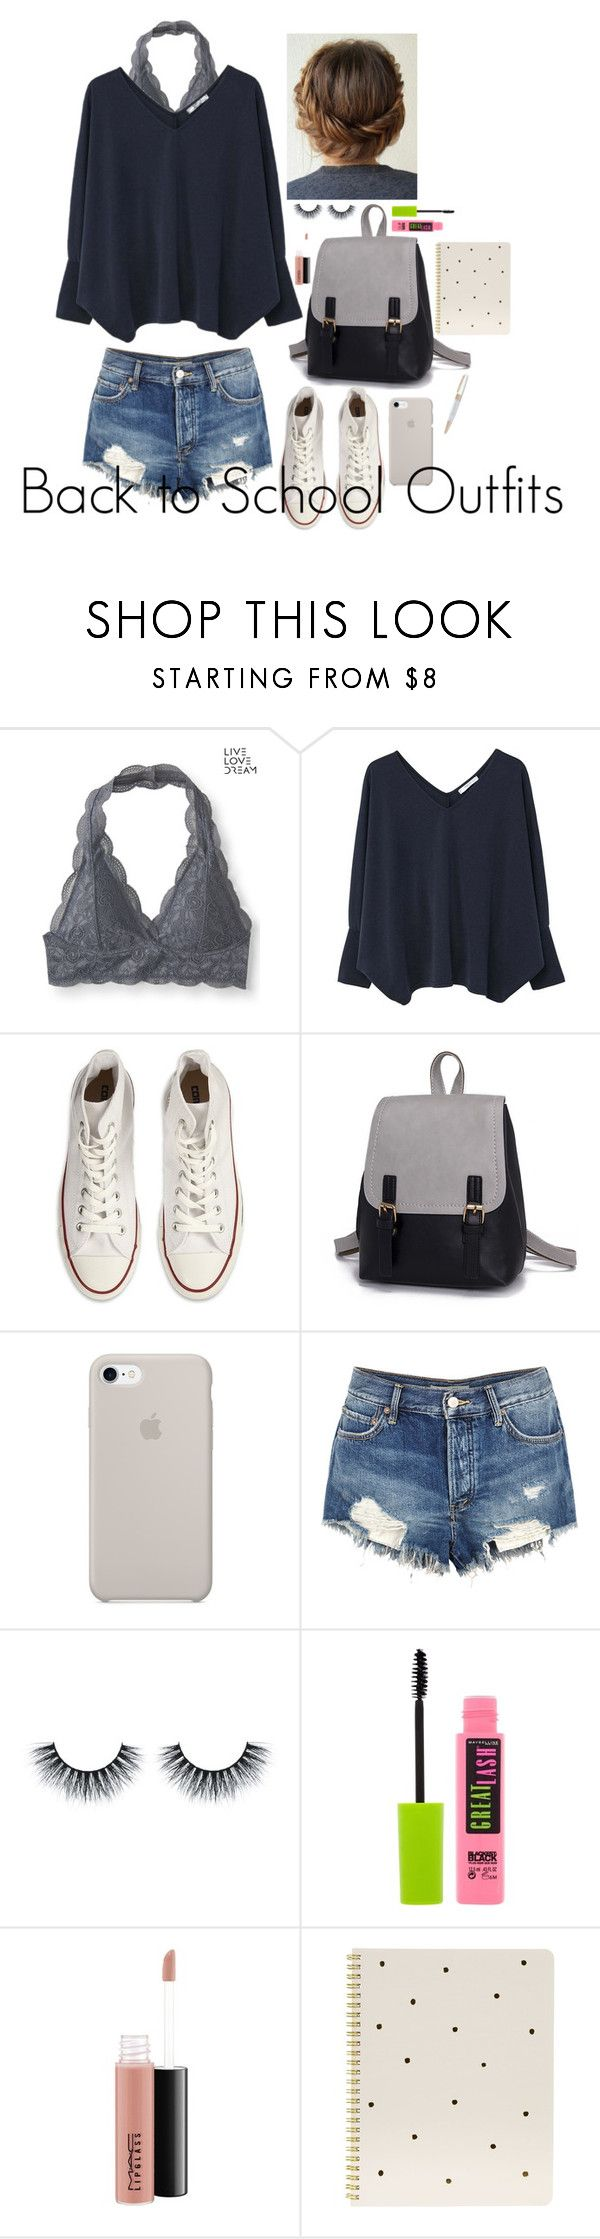 """""""Back to School Outfits #13"""" by gussied-up on Polyvore featuring Aéropostale, MANGO, Converse, Free People, Maybelline, MAC Cosmetics, Sugar Paper and Swarovski"""